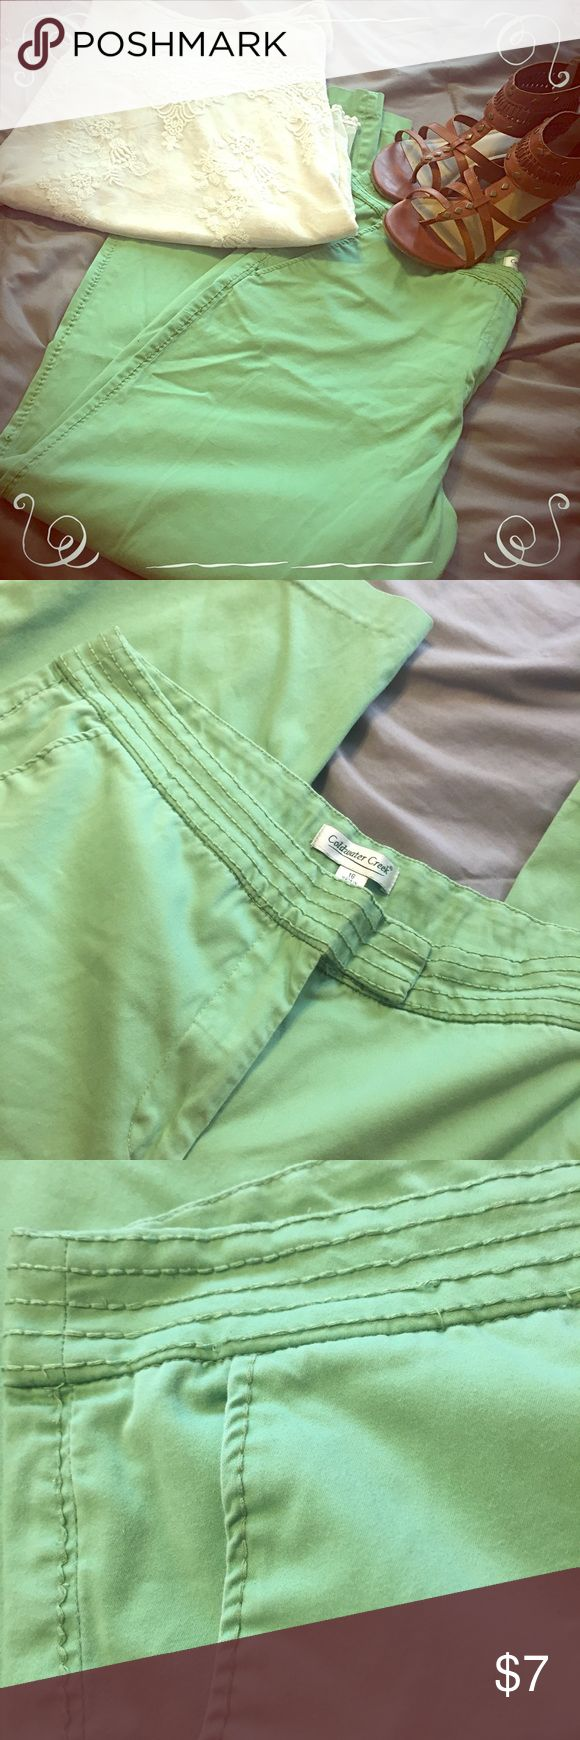 Coldwater Creek Flat Front Mint Pants Size 16.  Beautiful color! Coldwater Creek Pants Boot Cut & Flare